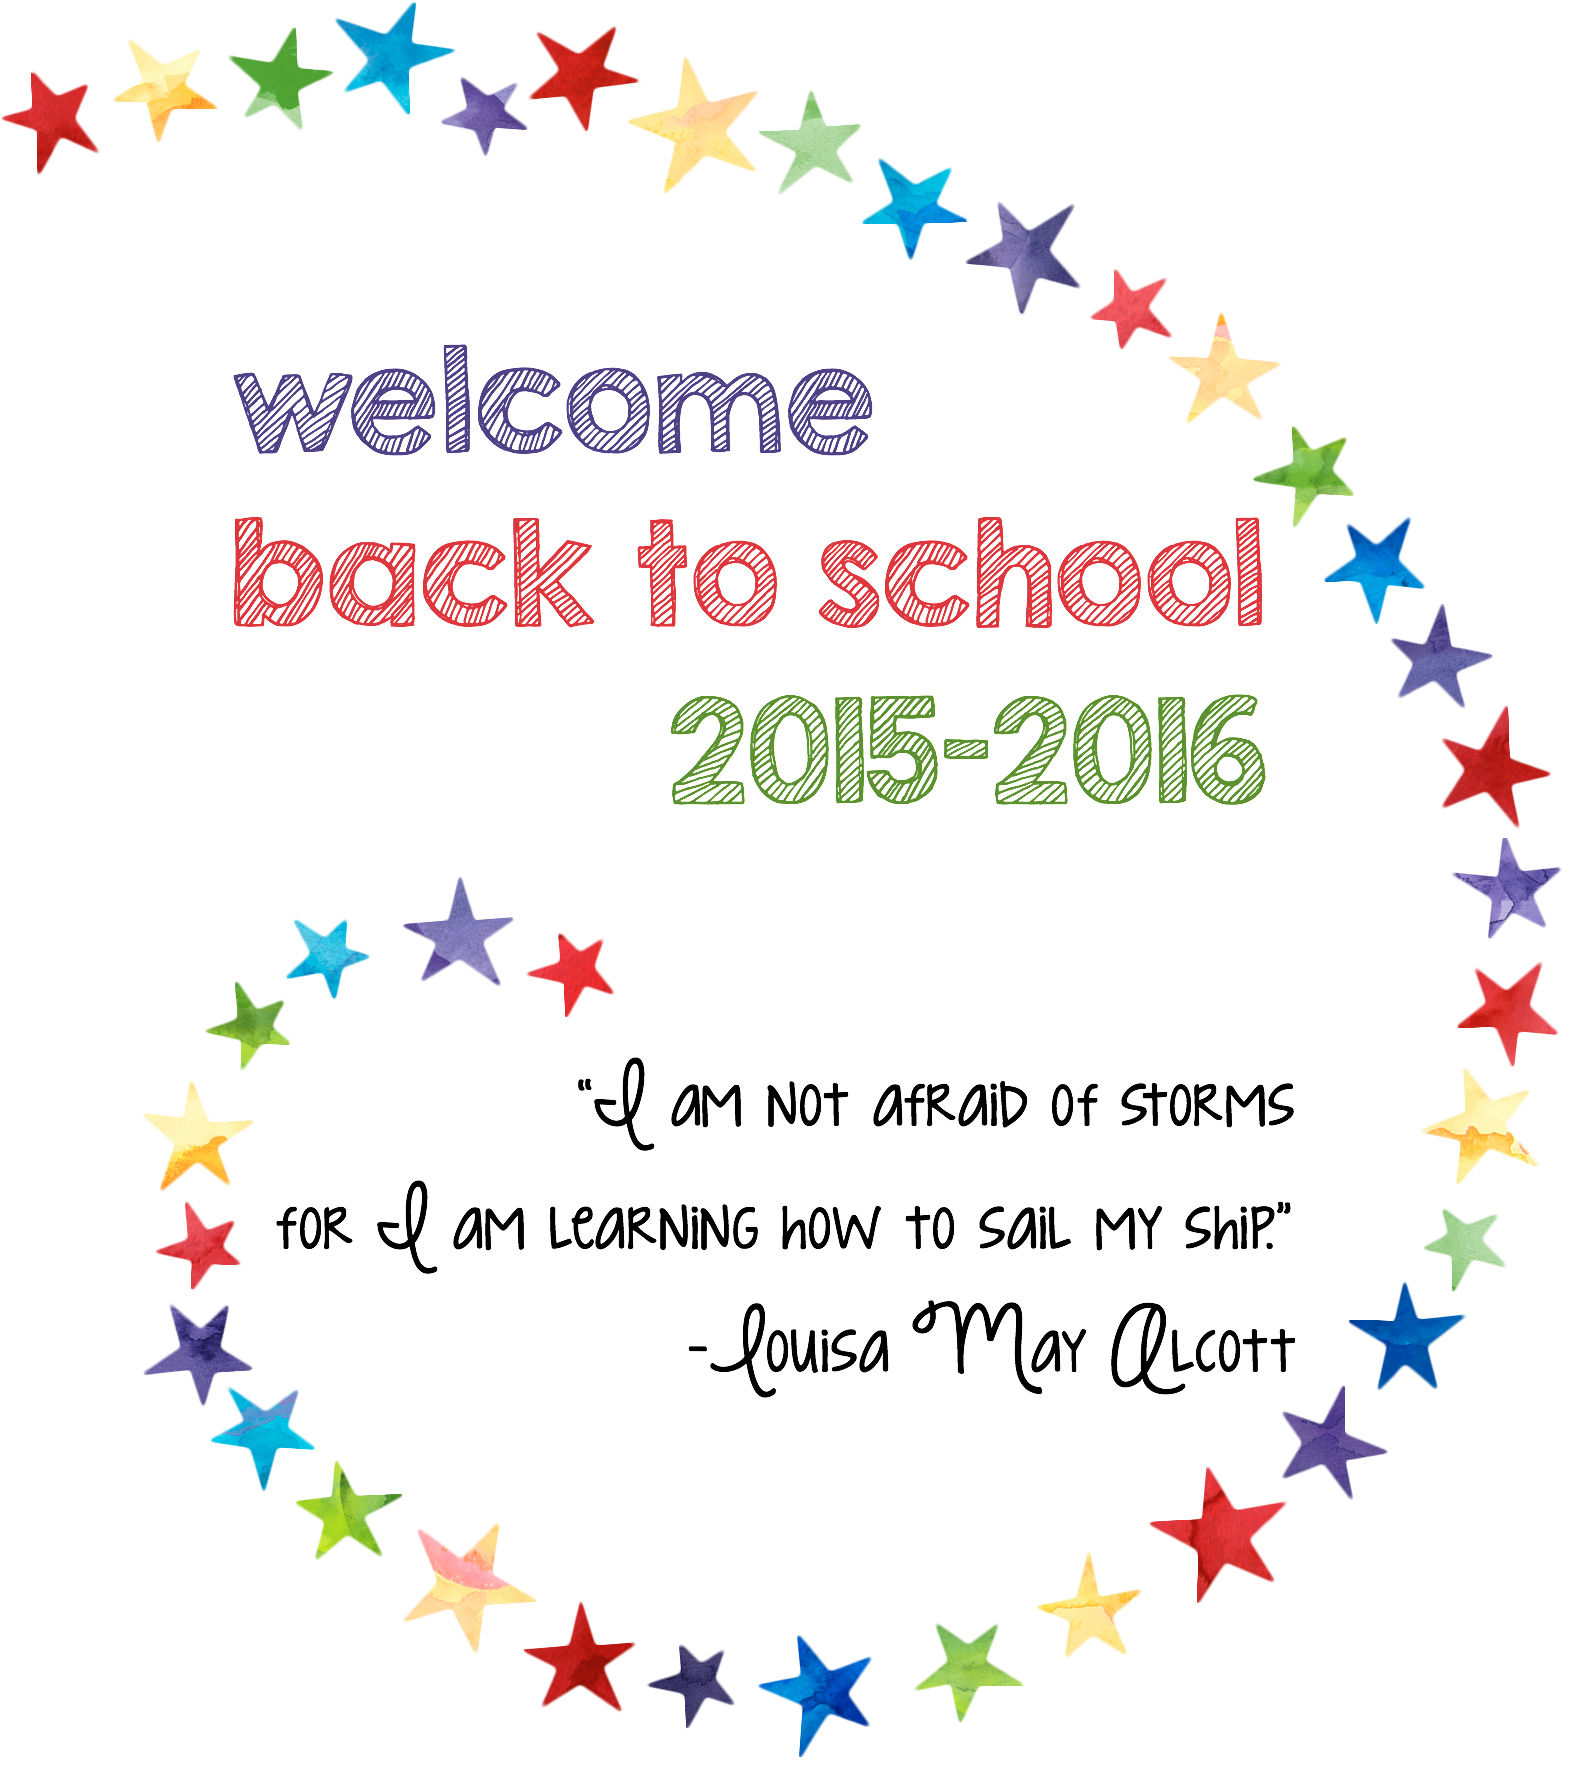 Welcome back to school principals blog welcome 2015 16 dear fox hill parents thecheapjerseys Choice Image